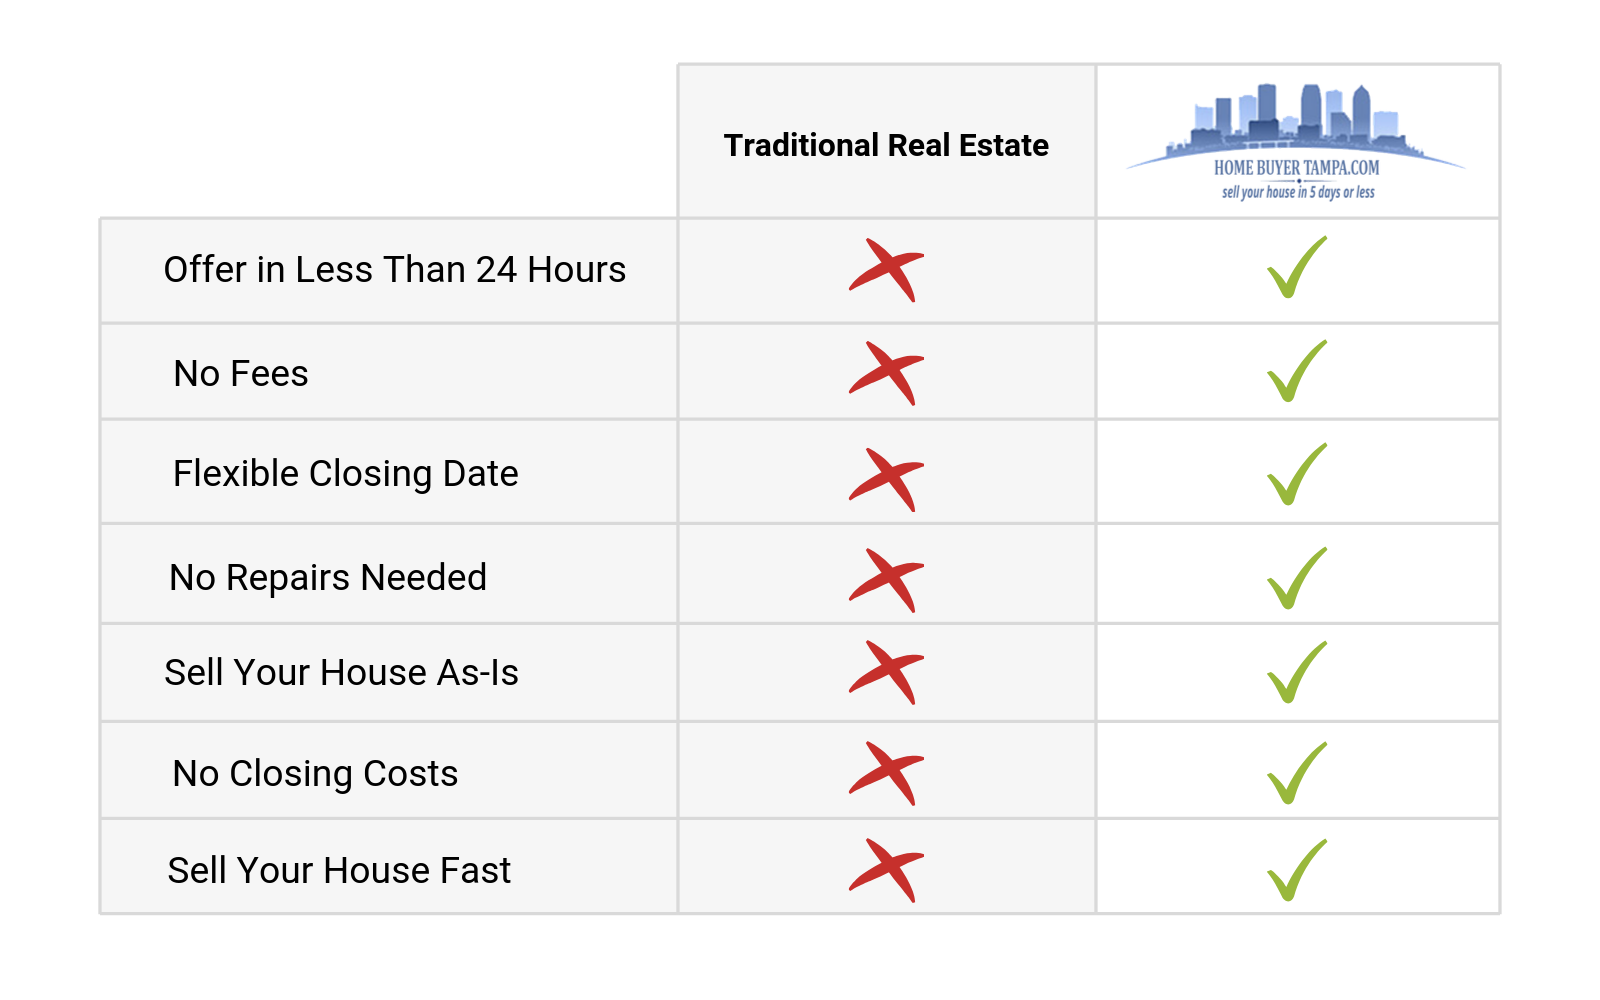 Traditional Real Estate vs Selling to Home Buyer Tampa